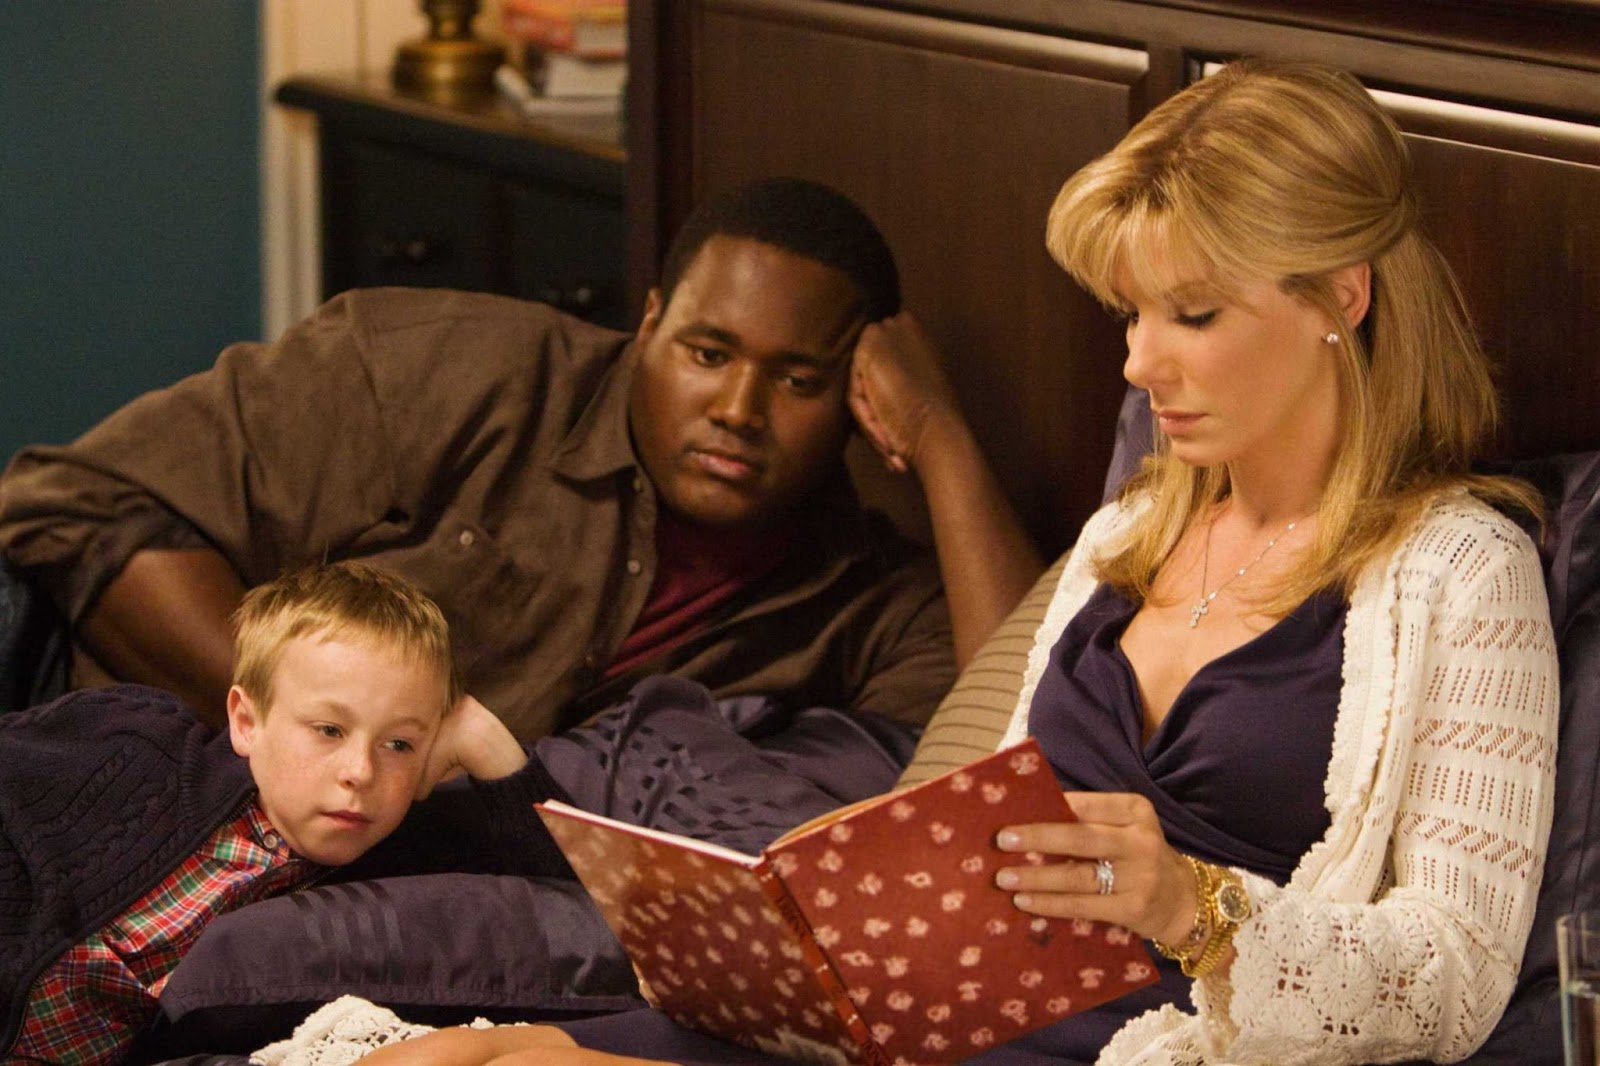 on the blind side and white paternalism the progressive democrat sandra bullock reads a story to her child son and michael oher